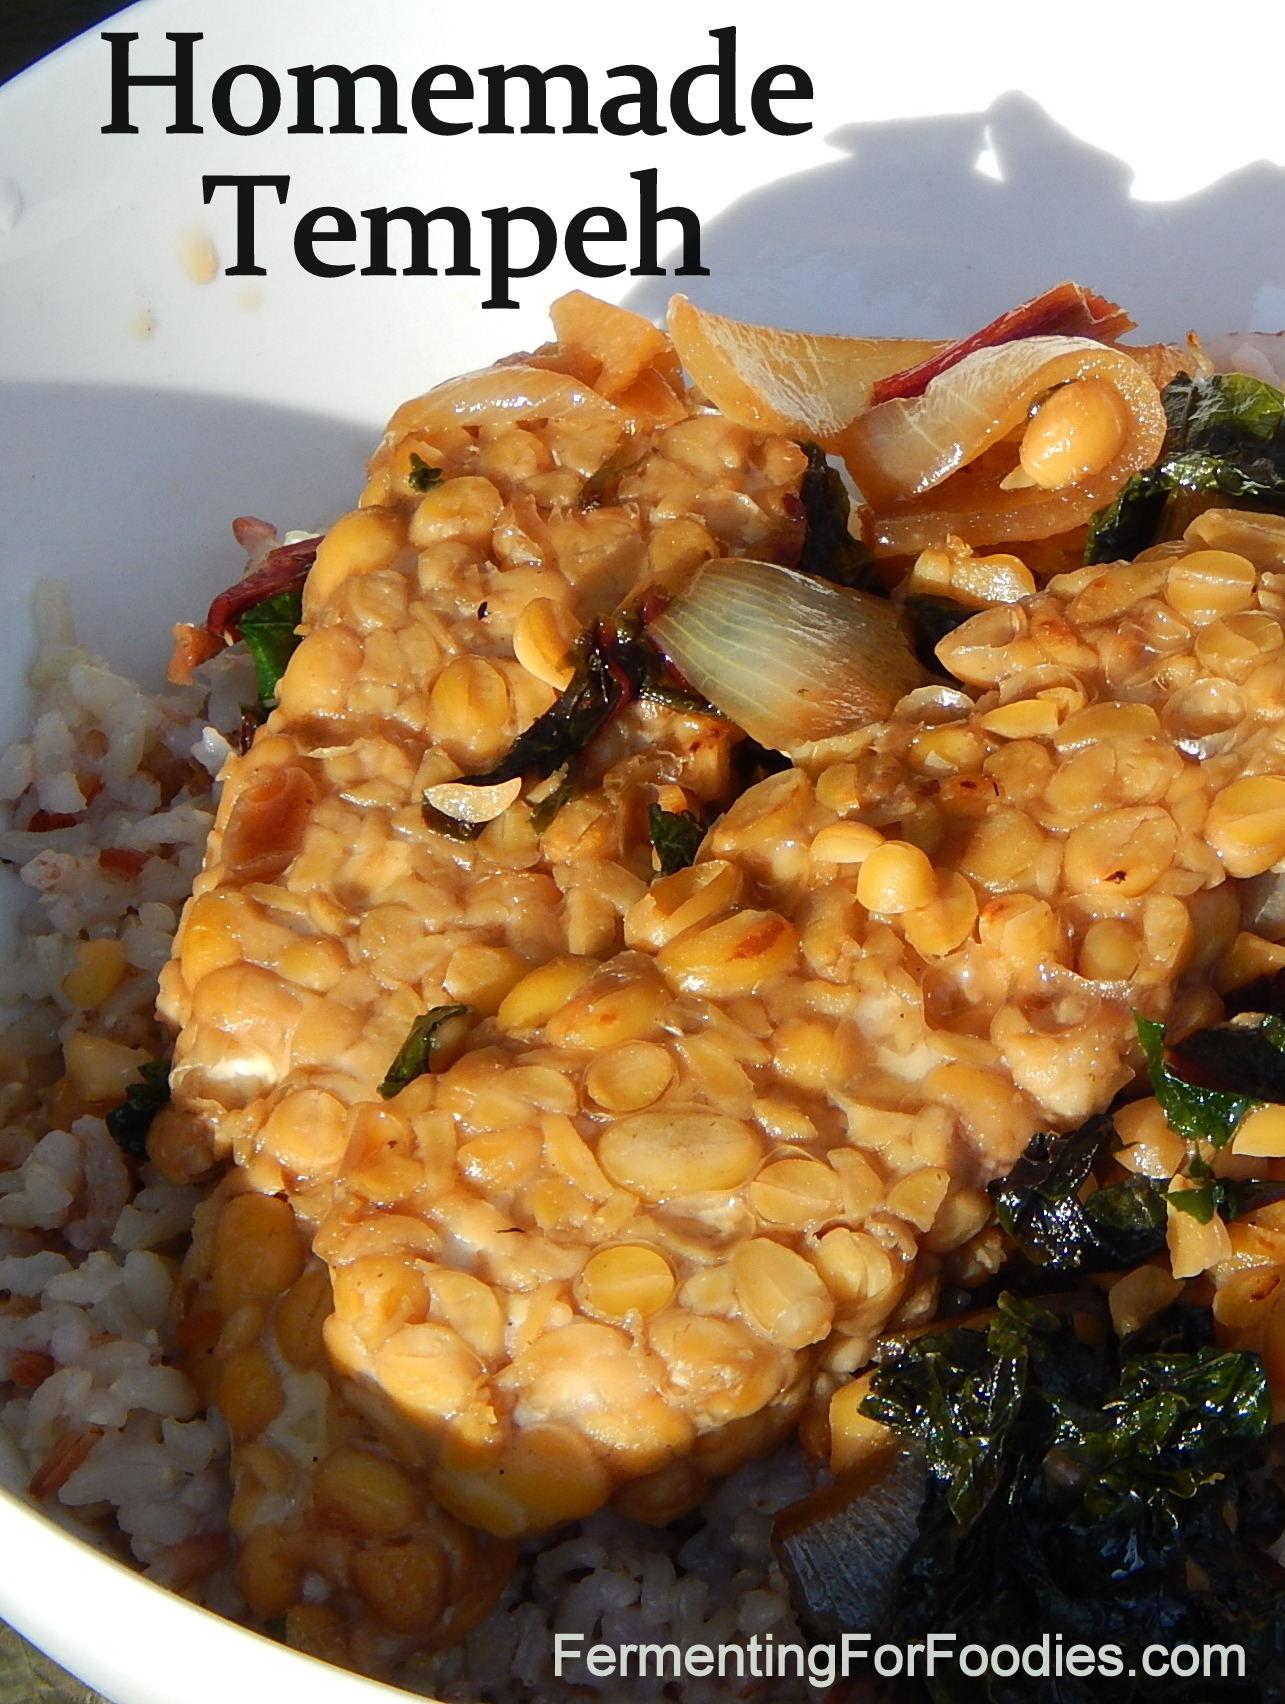 Homemade Tempeh with a stirfry